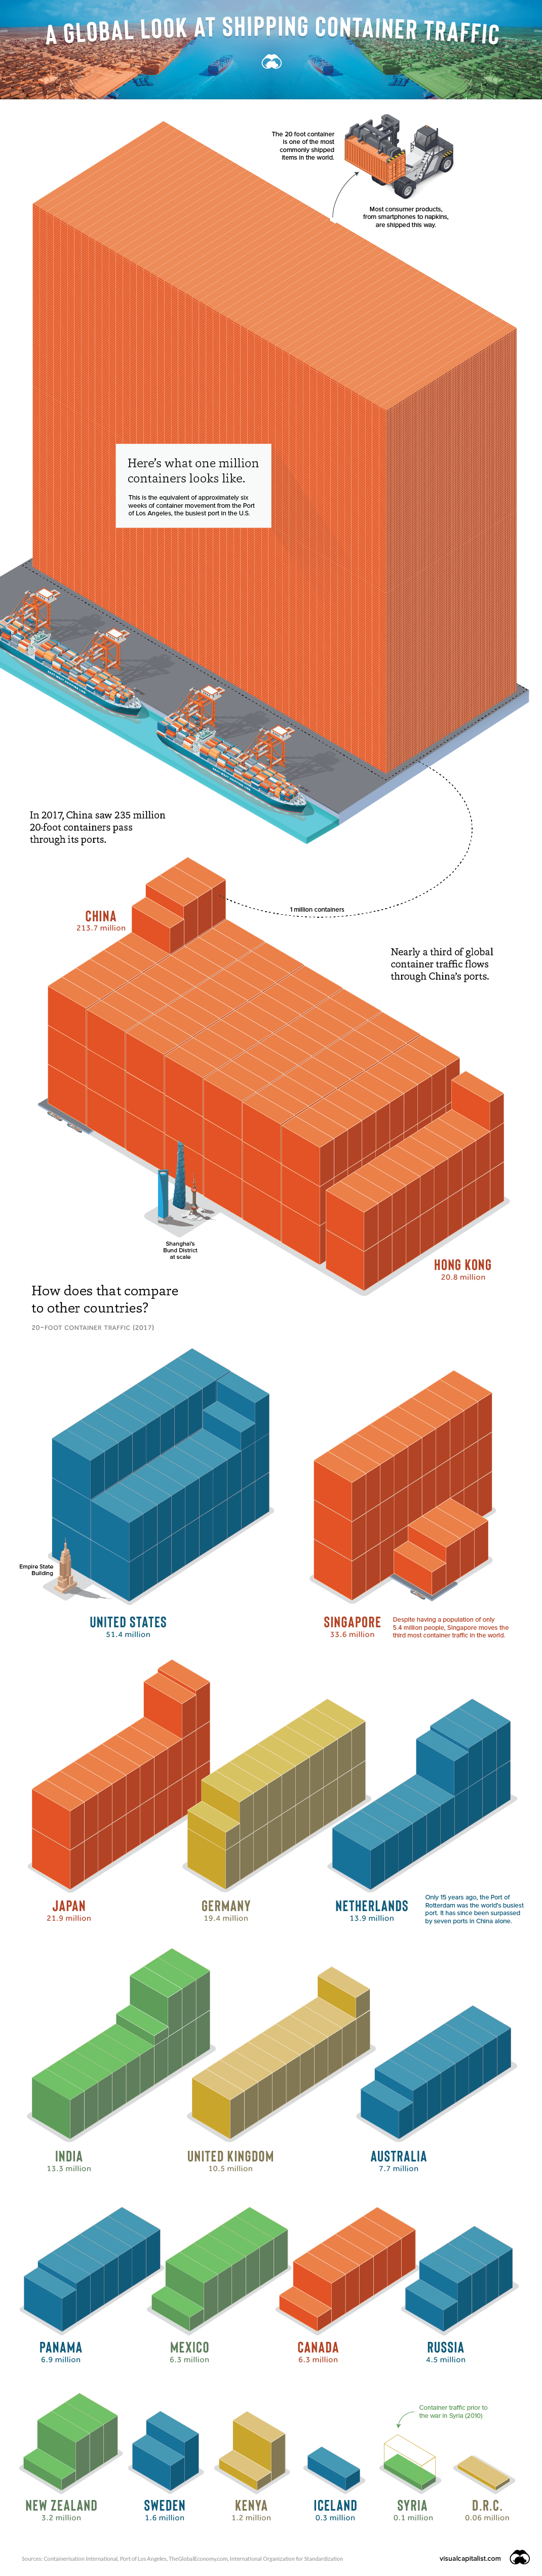 Shipping container traffic